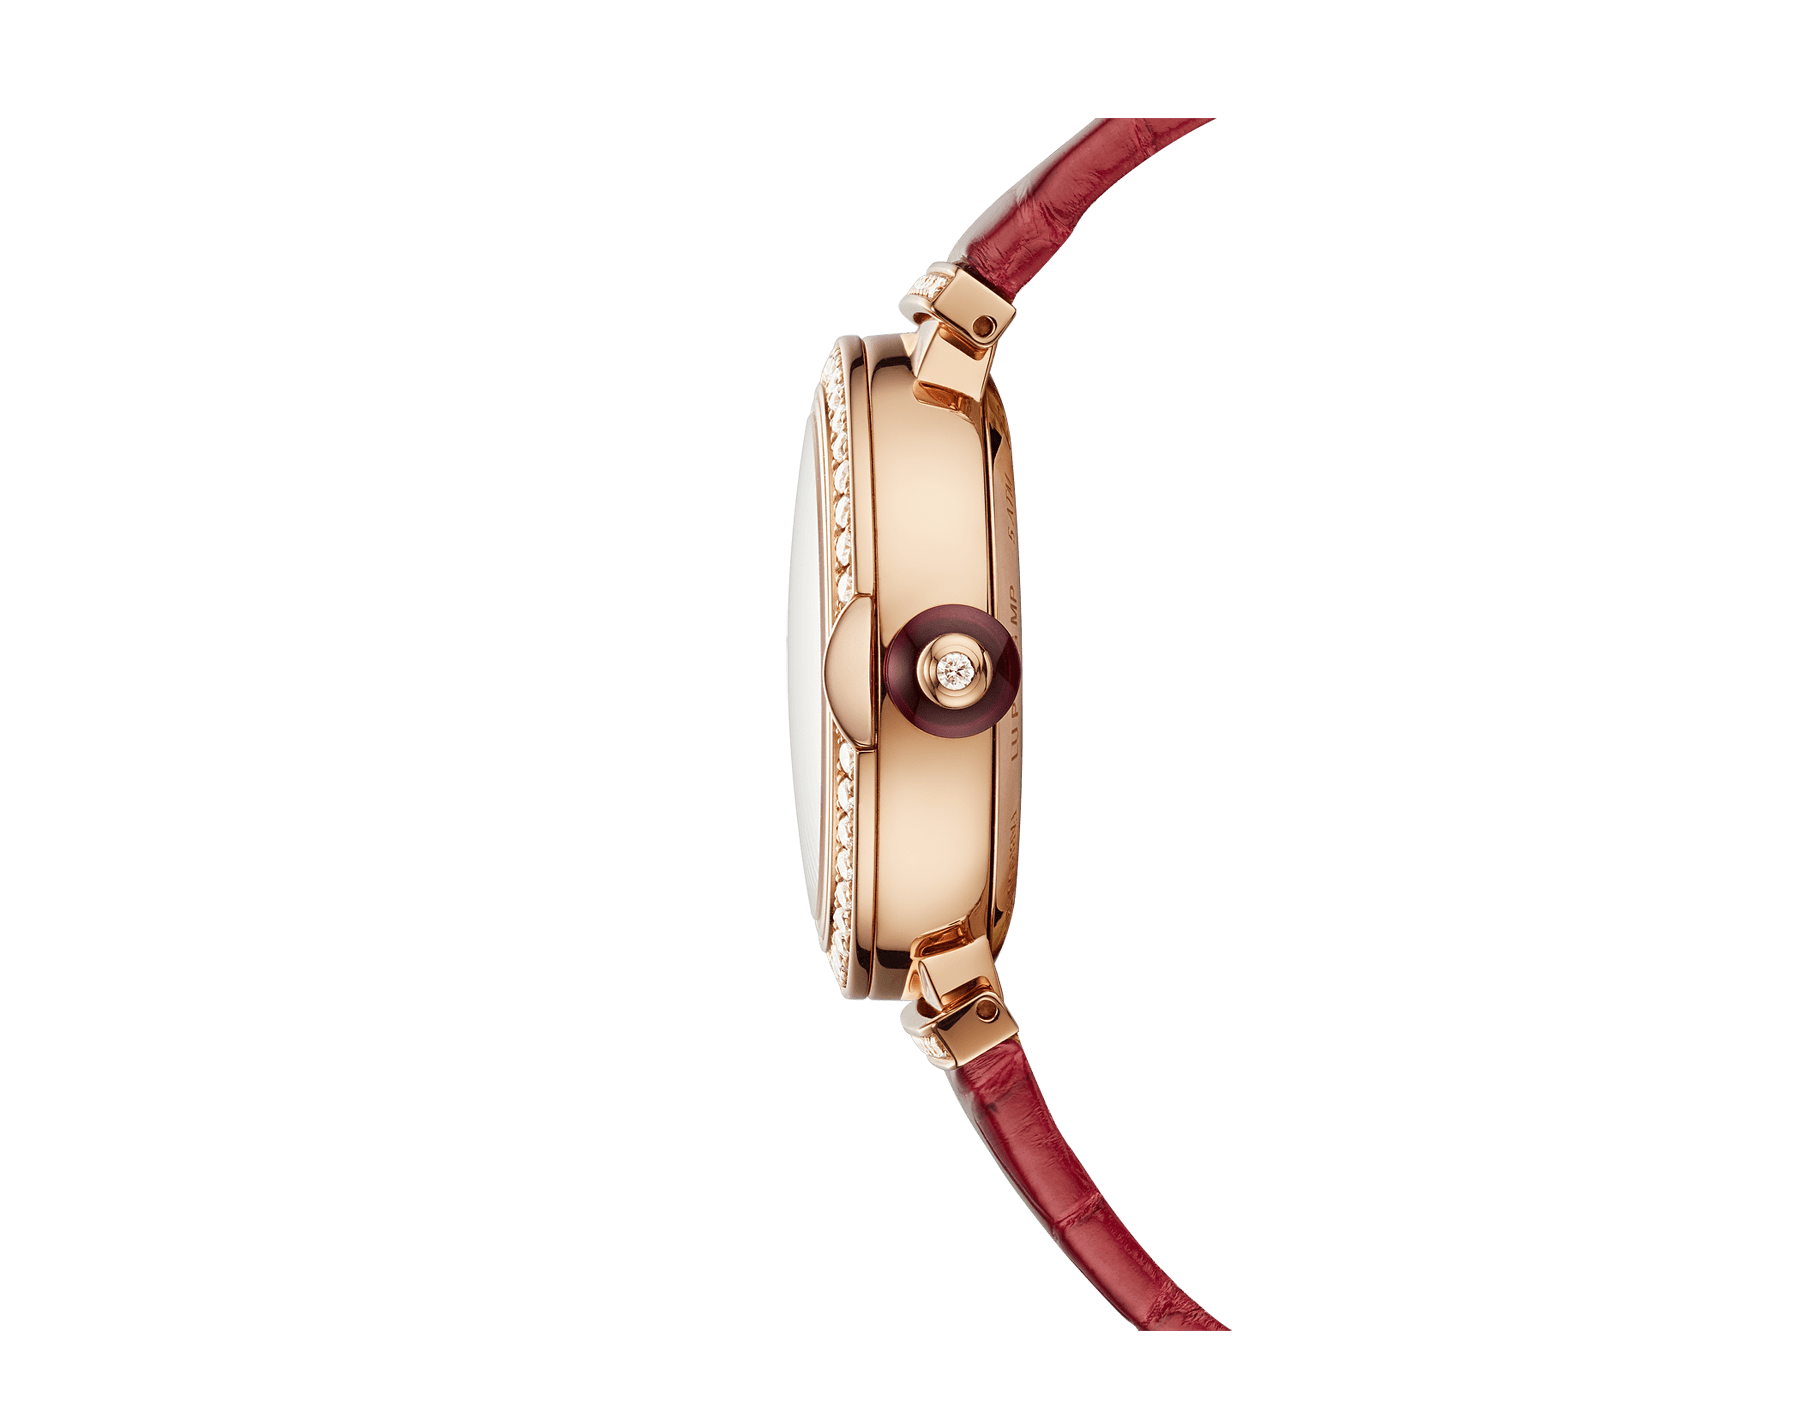 LVCEA Moon phase watch with 18 kt rose gold case set with diamonds, mother-of-pearl and heart of ruby dial, red alligator bracelet. 102686 image 3